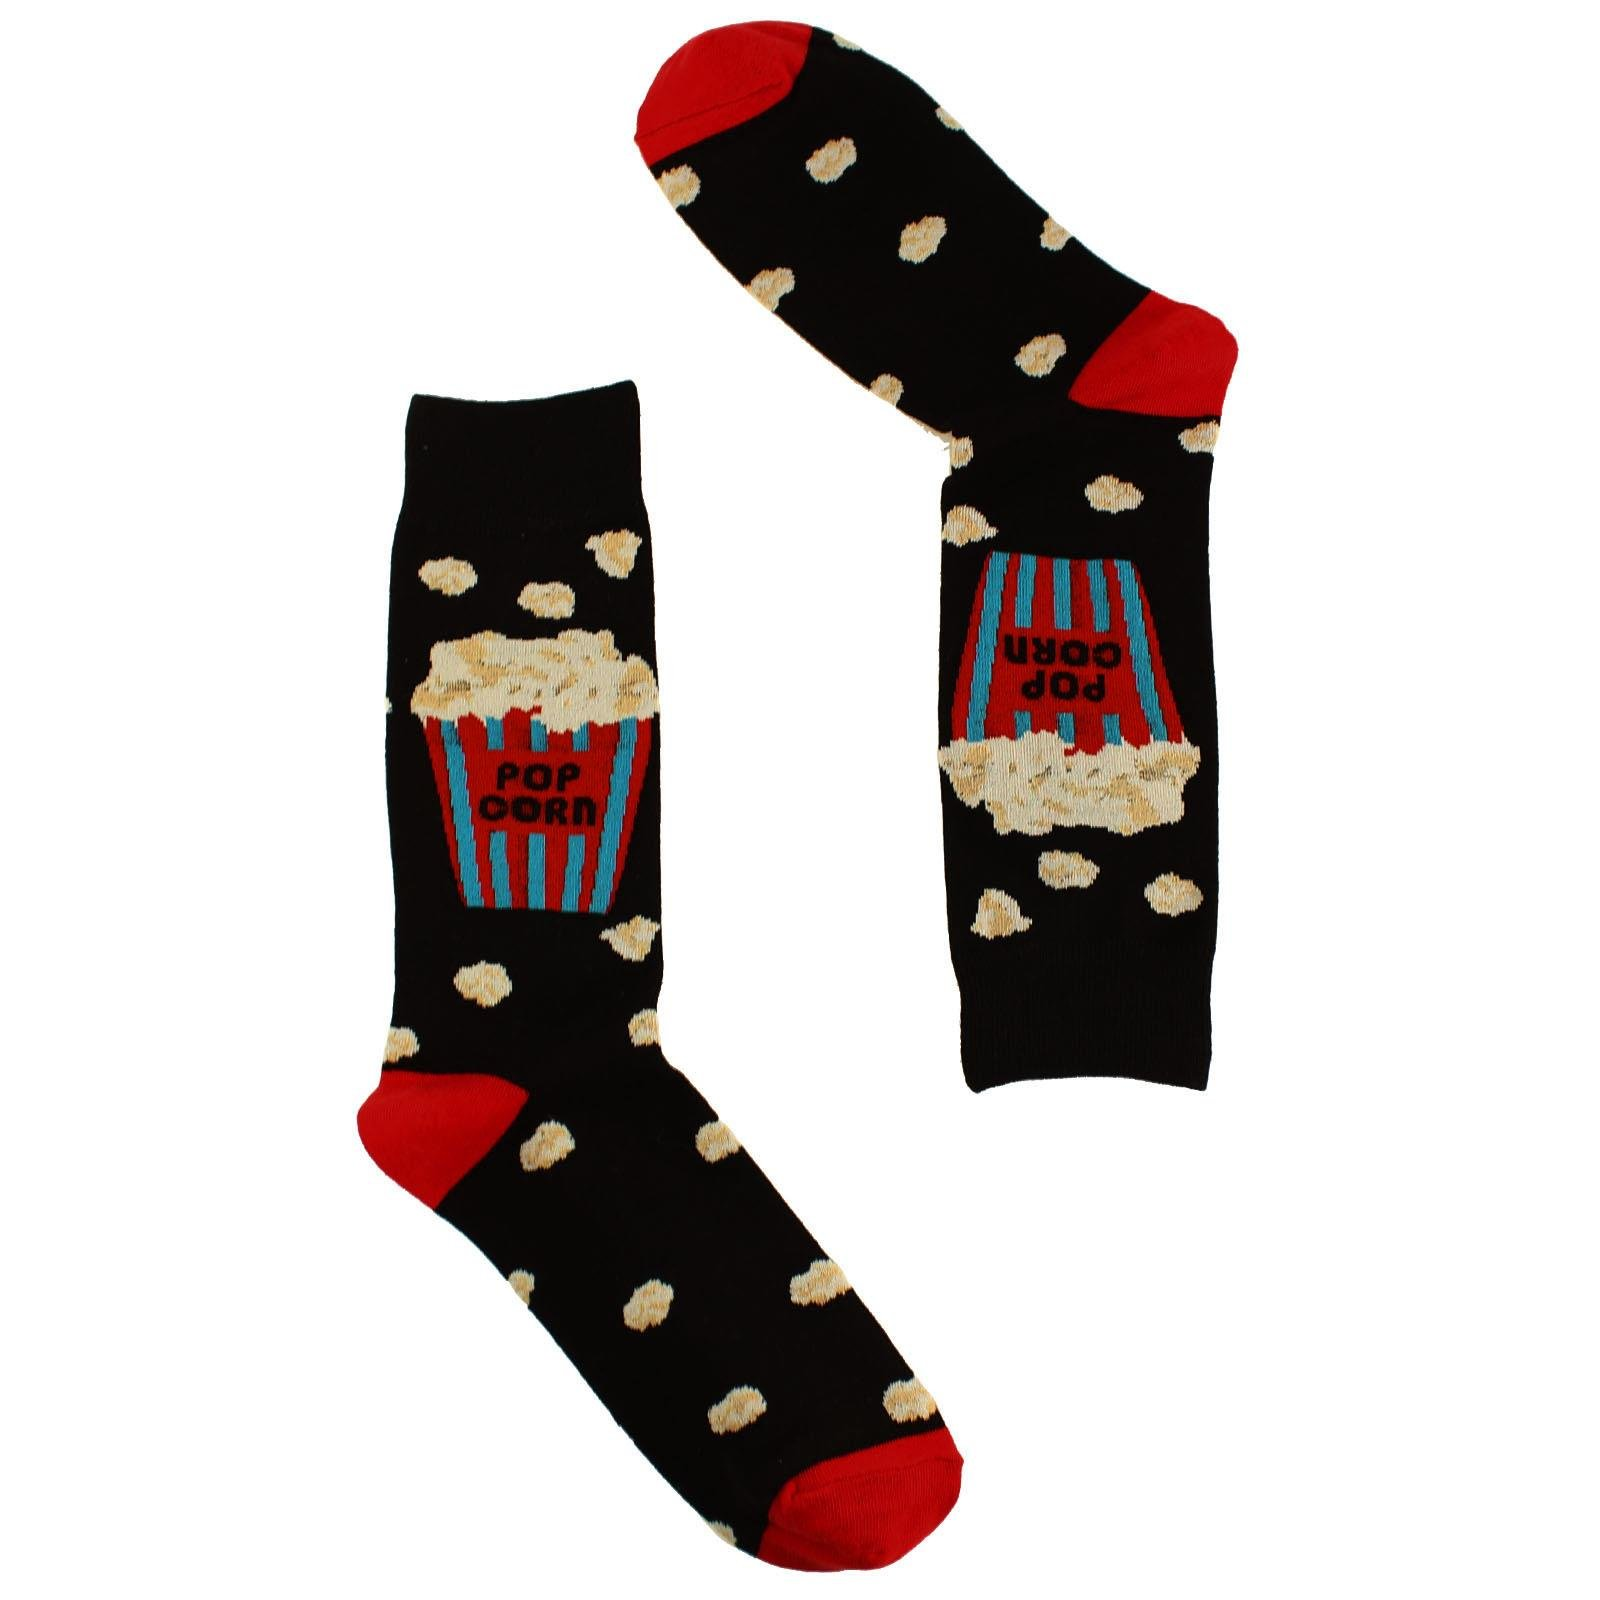 Men's Everday Novelty Fast Foods Comfort Foods Trouser Dressy Casual Comfy Socks Movie Popcorn by SK Hat shop (Image #1)